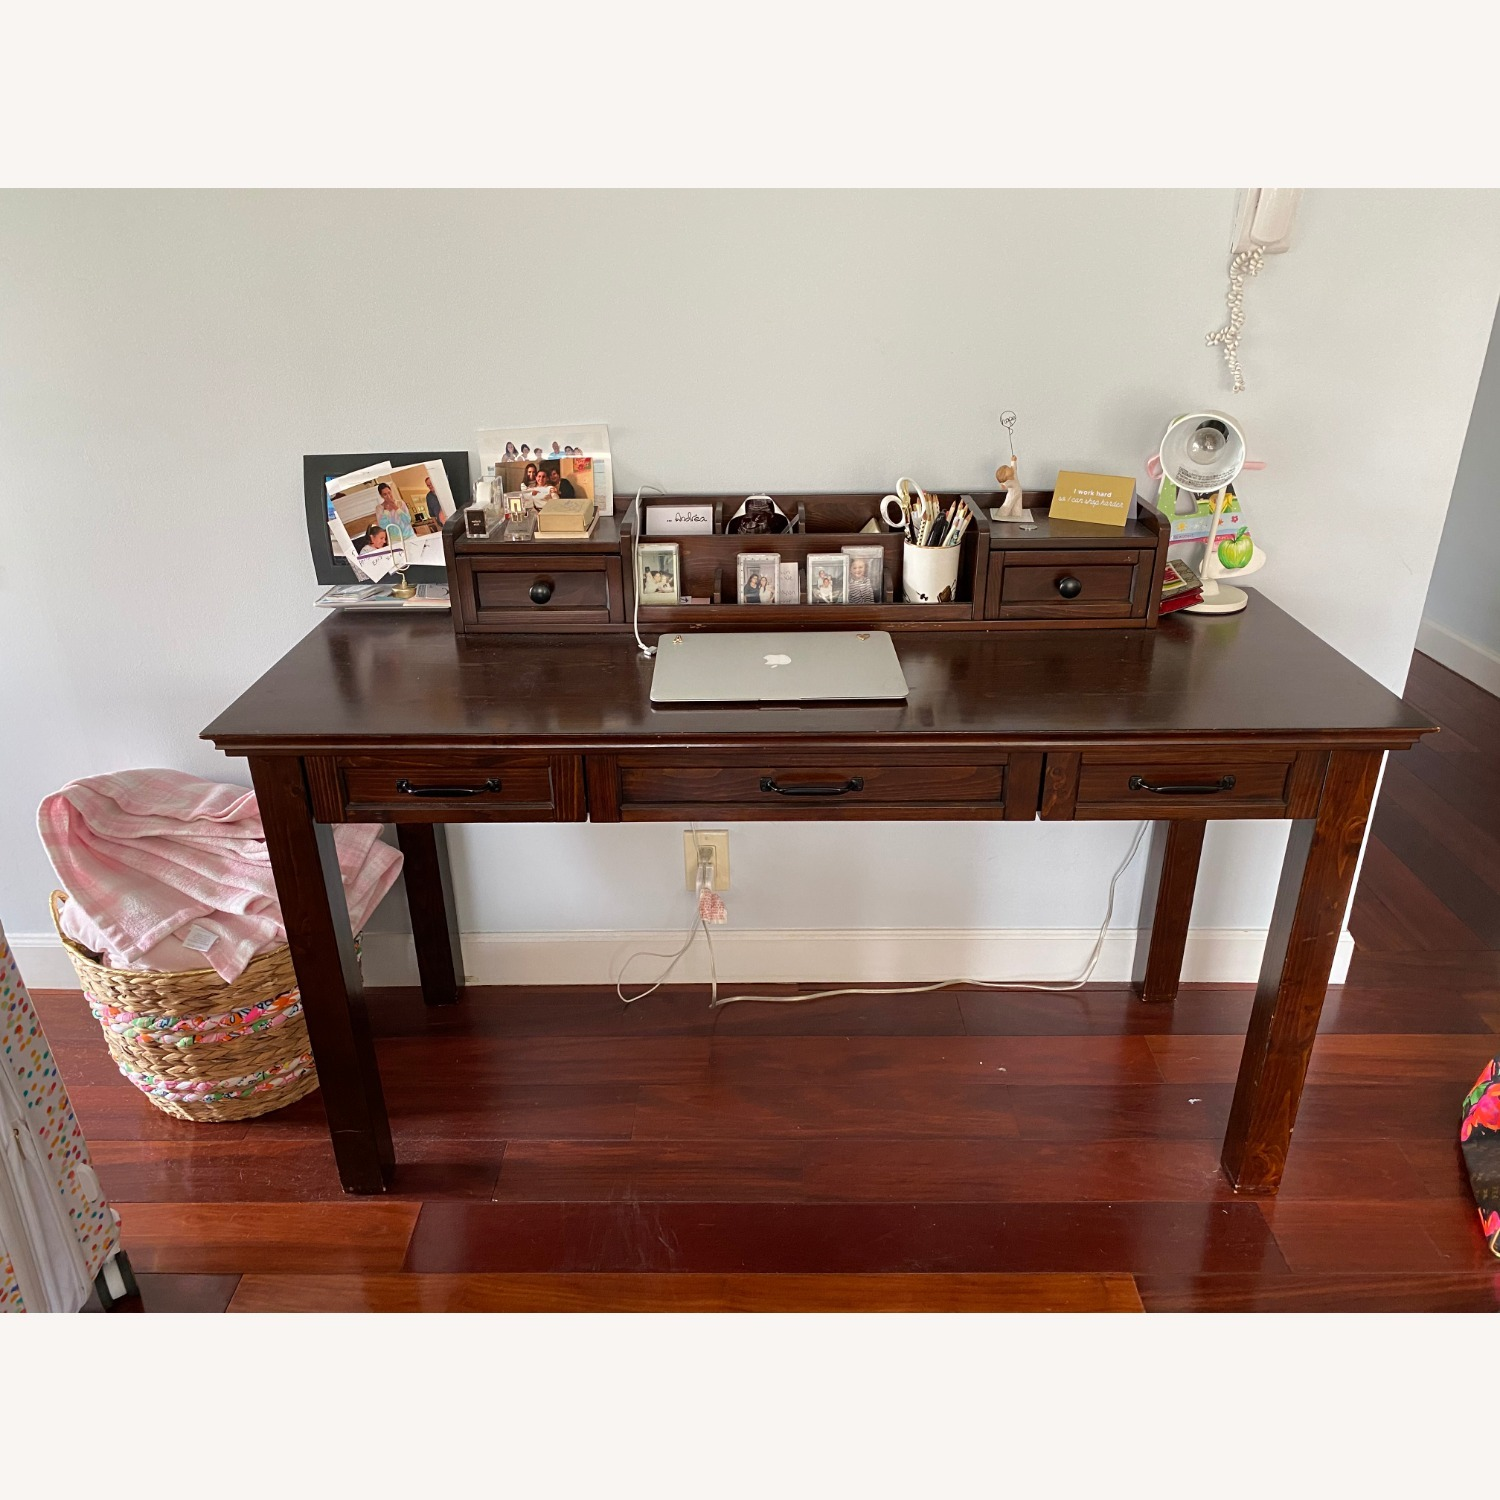 Pottery Barn Desk with Hutch - image-1